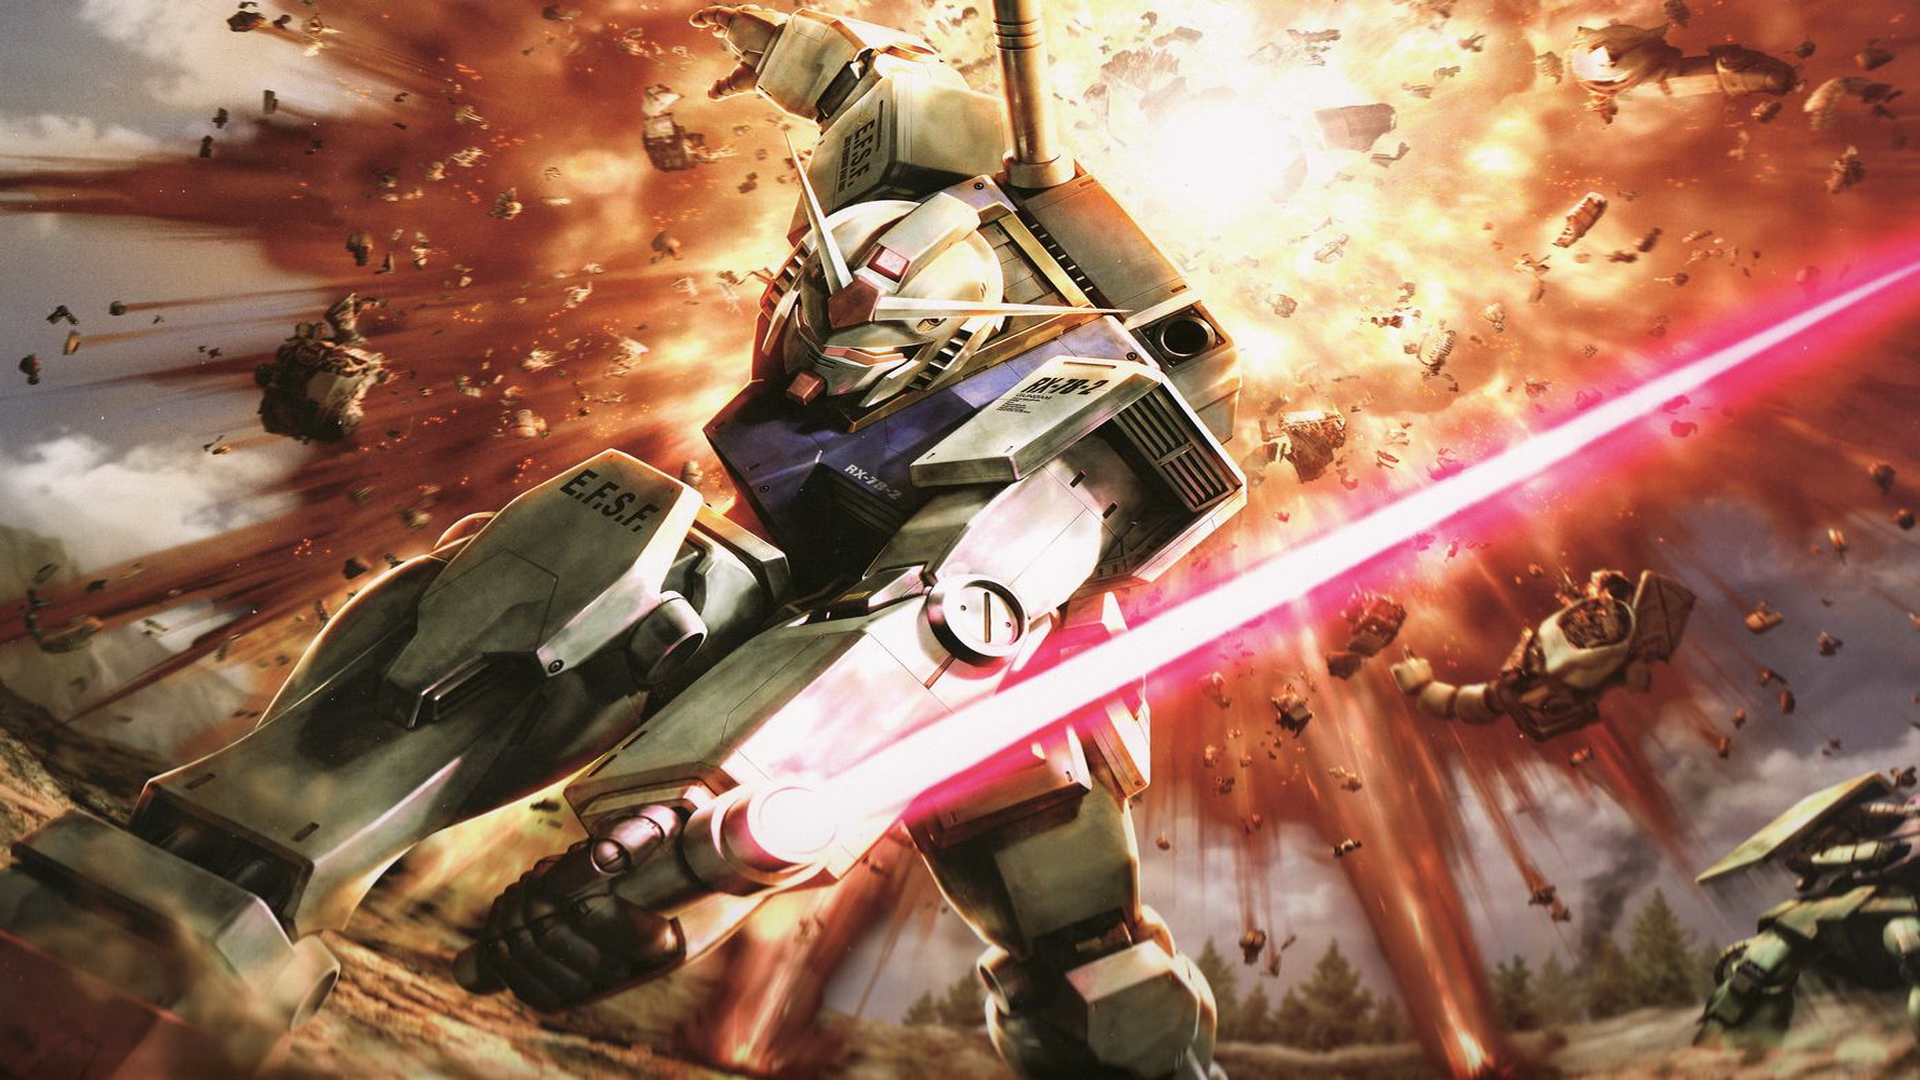 Gundam Wallpapers HD Desktop Wallpapers Gundam Wallpapers 17jpg 1920x1080